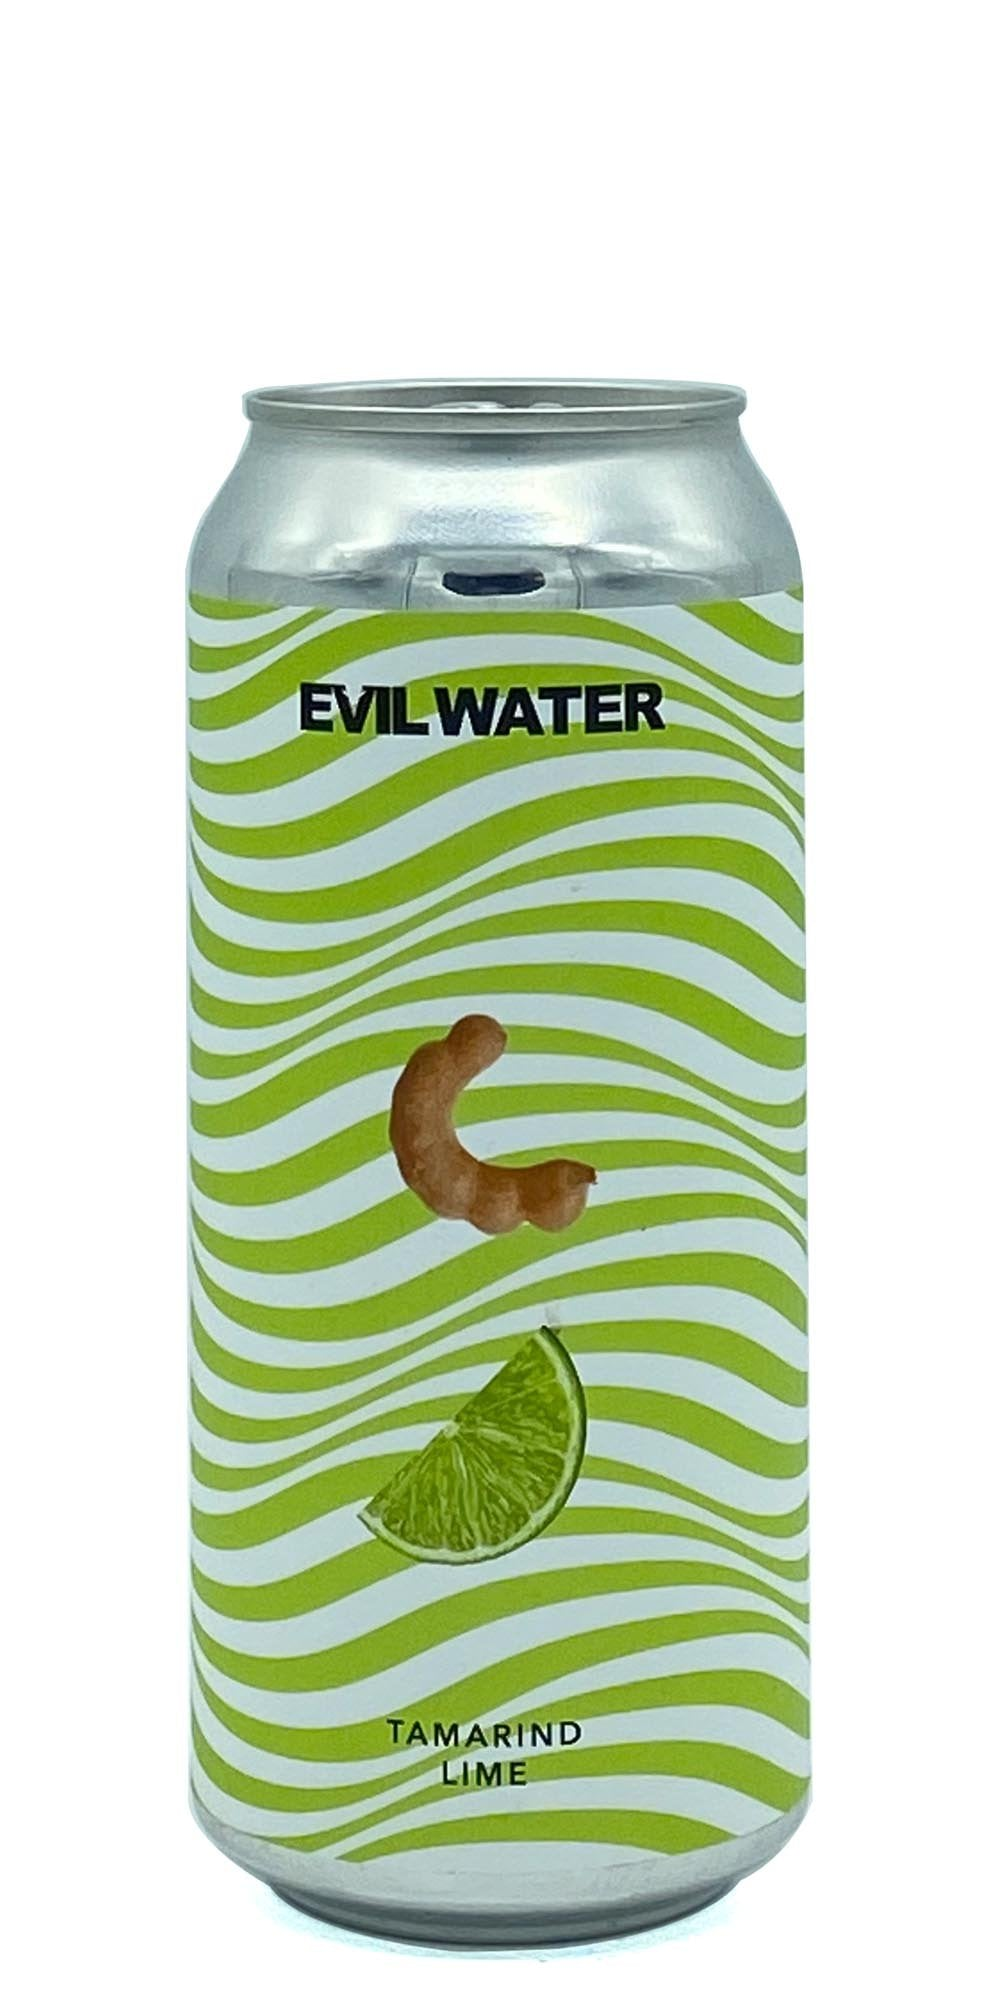 Evil Water - Tamarind Lime - Drikbeer - Order Craft Beer Online